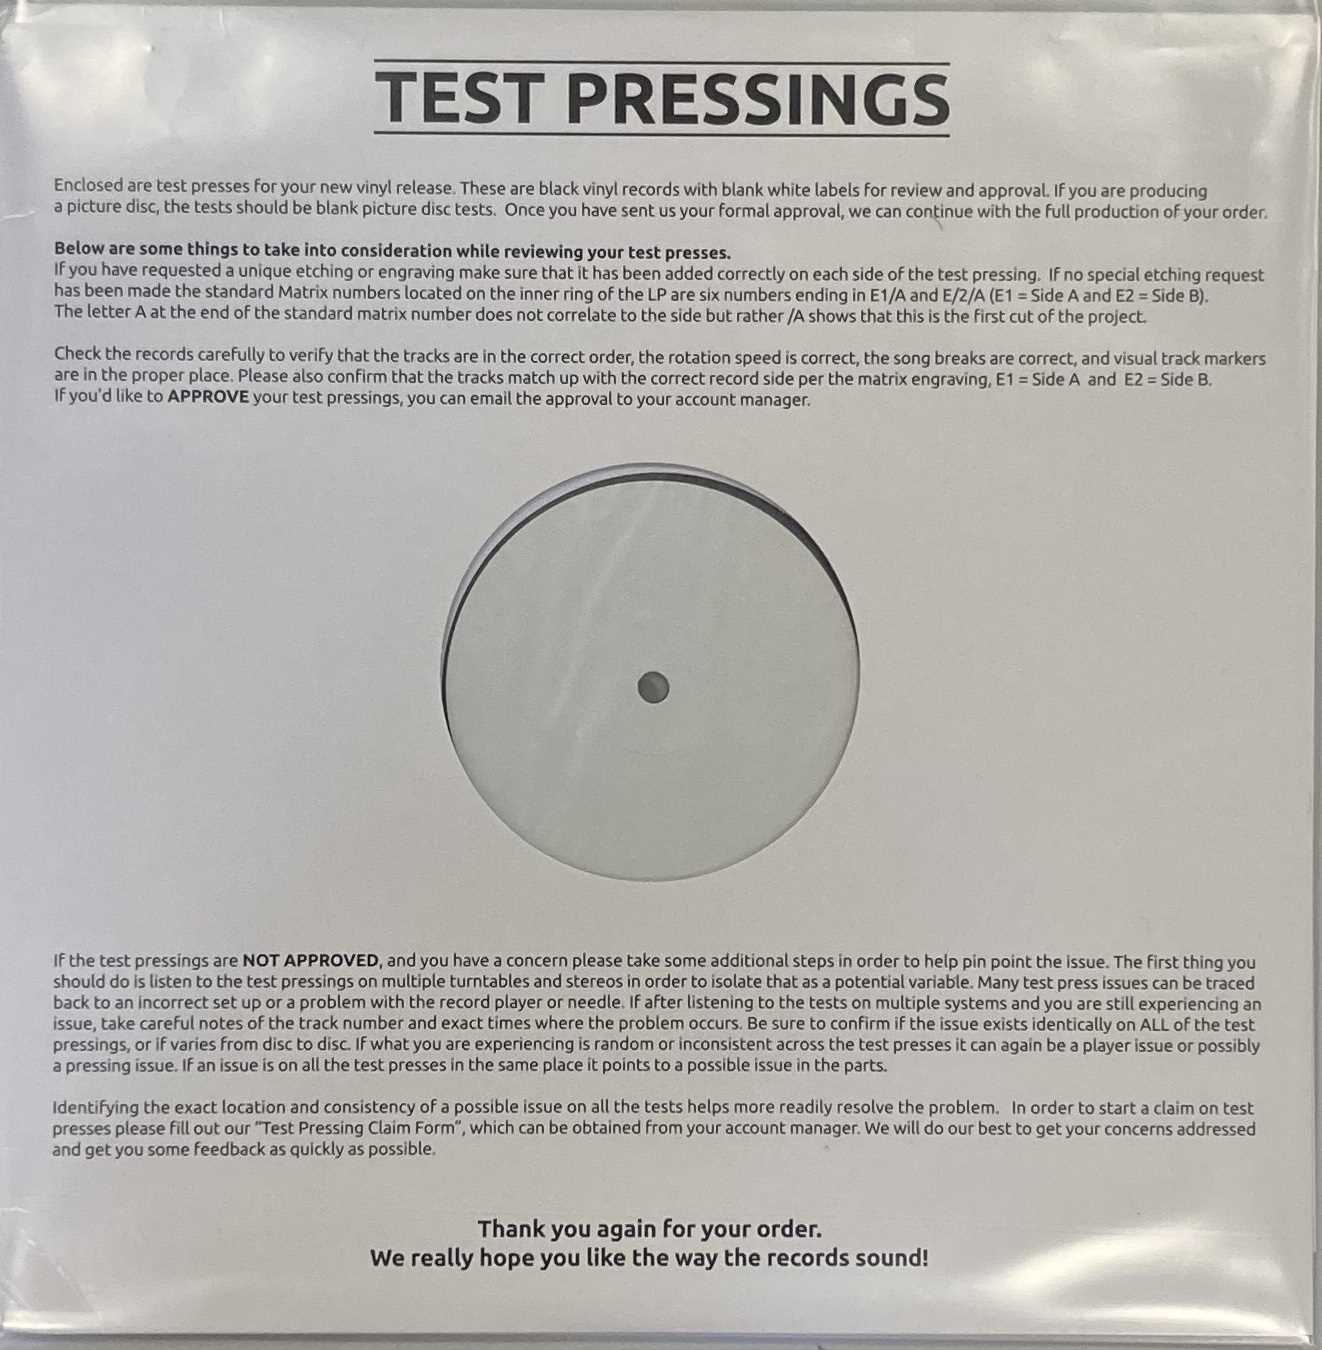 EMBRACE - THE GOOD WILL OUT LP (2019 WHITE LABEL TEST PRESSING - UMG 0830776) - Image 2 of 3